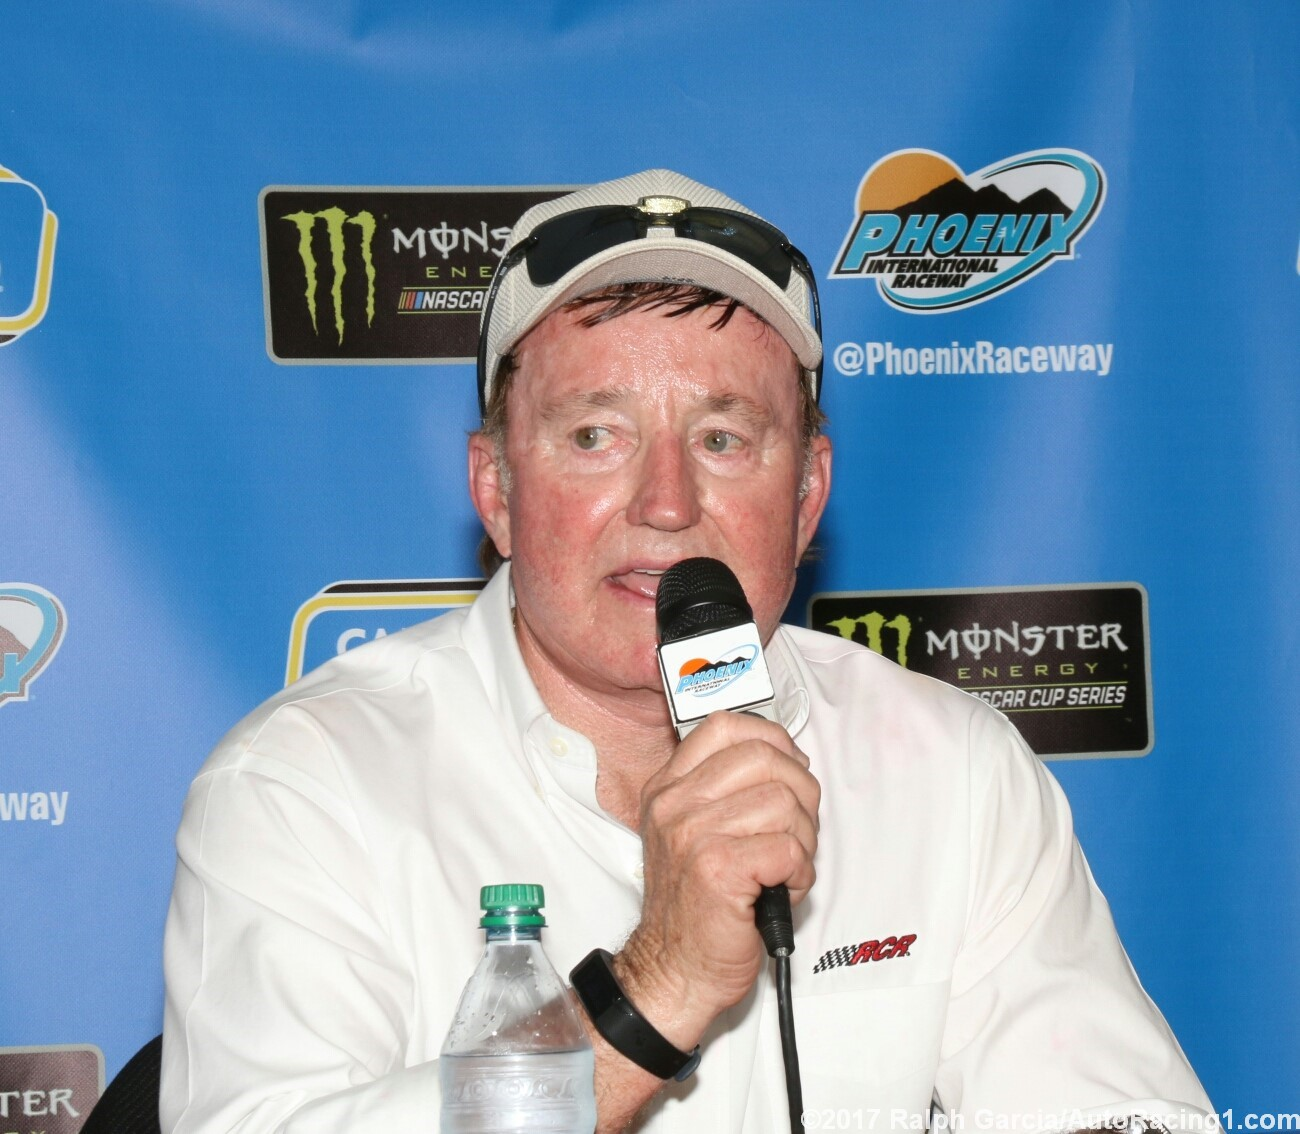 Richard Childress loses big sponsor